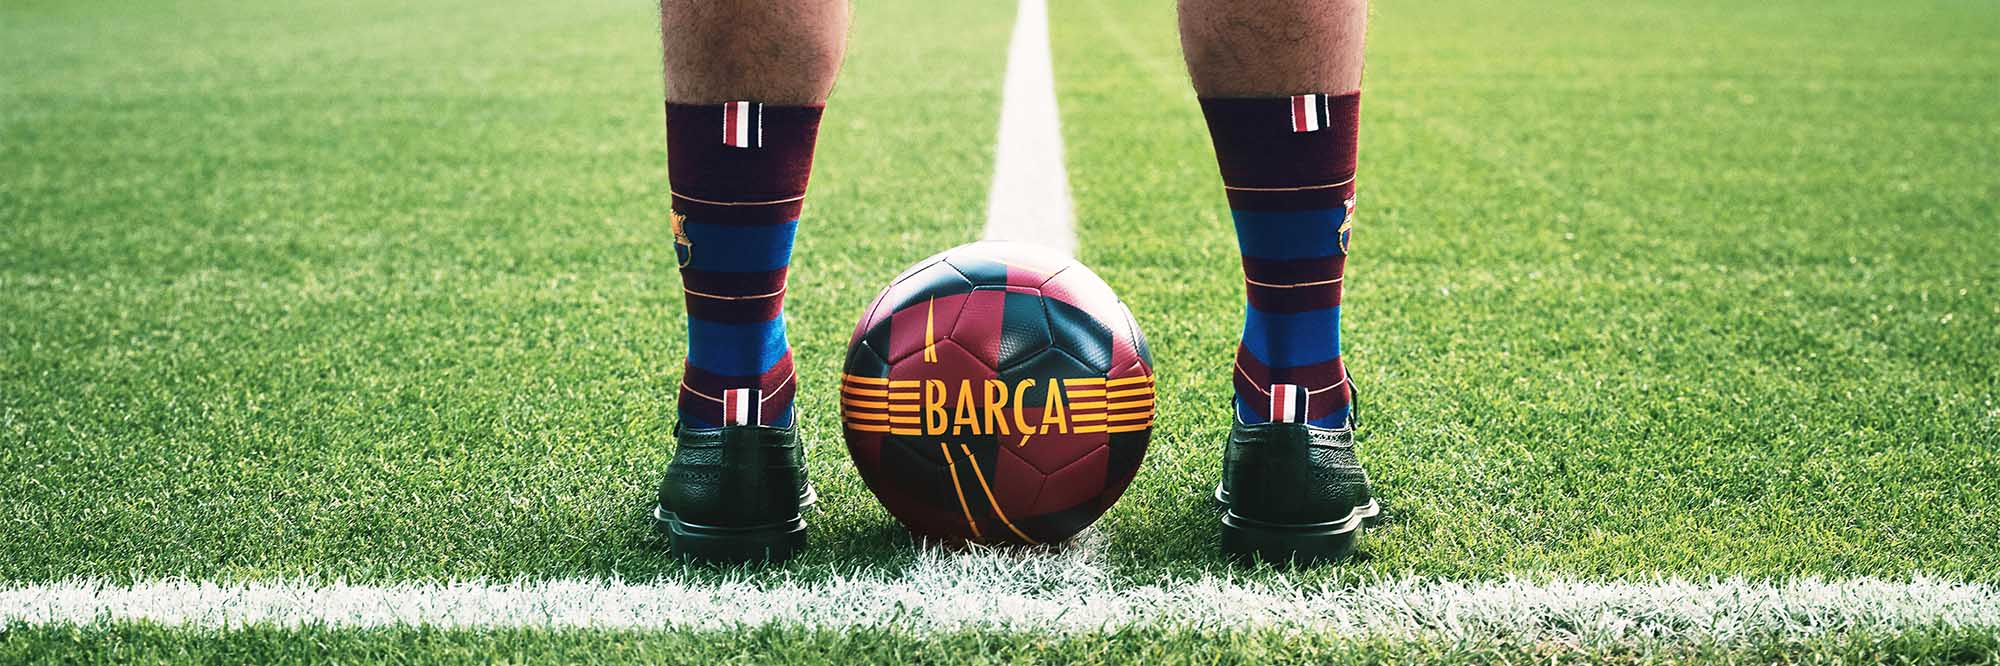 Discover Thom Browne FC Barcelona Capsule Collection